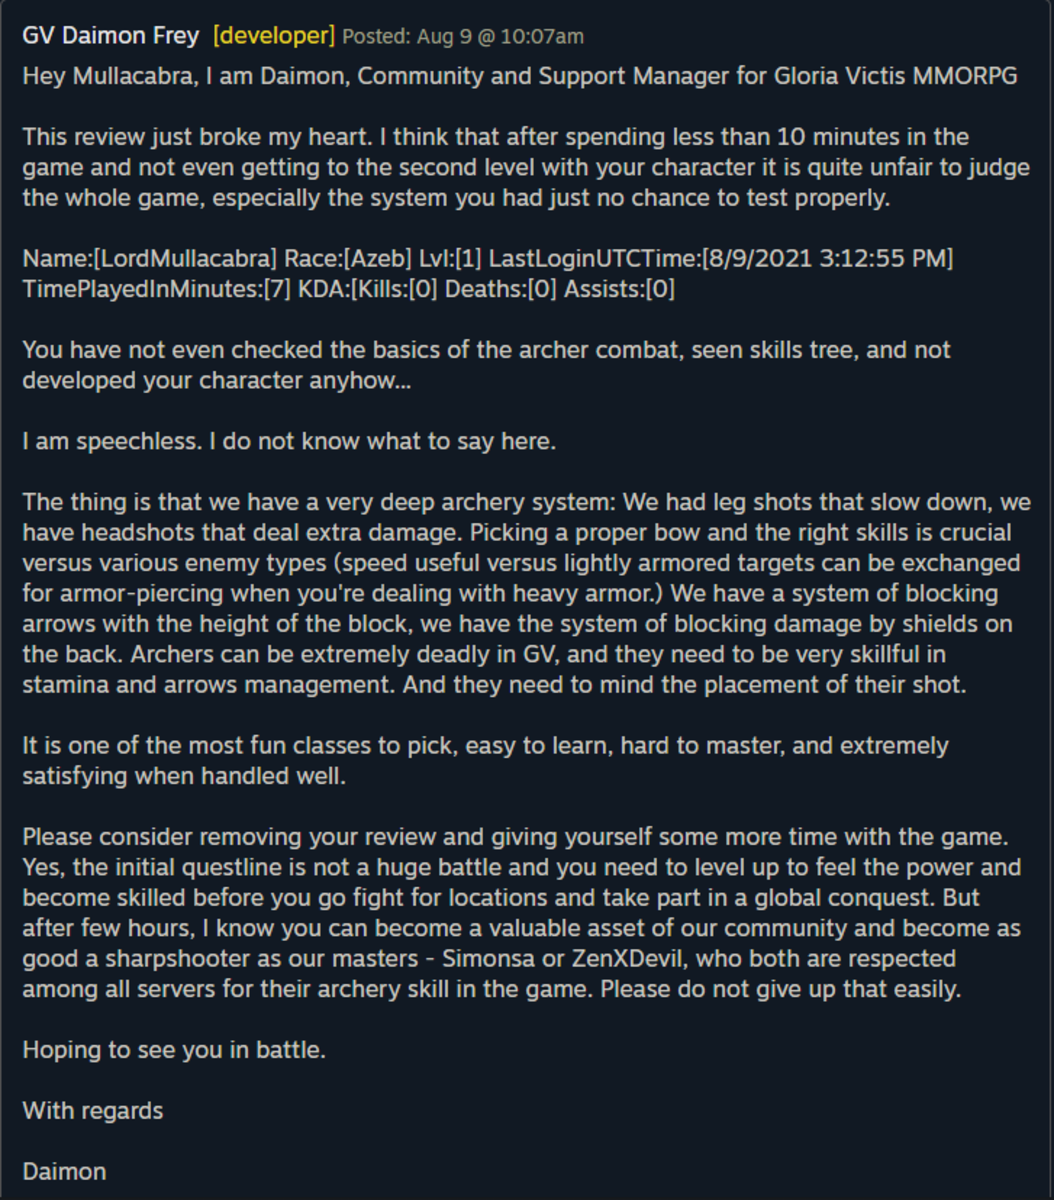 This is a capture of the dev's response to my review.